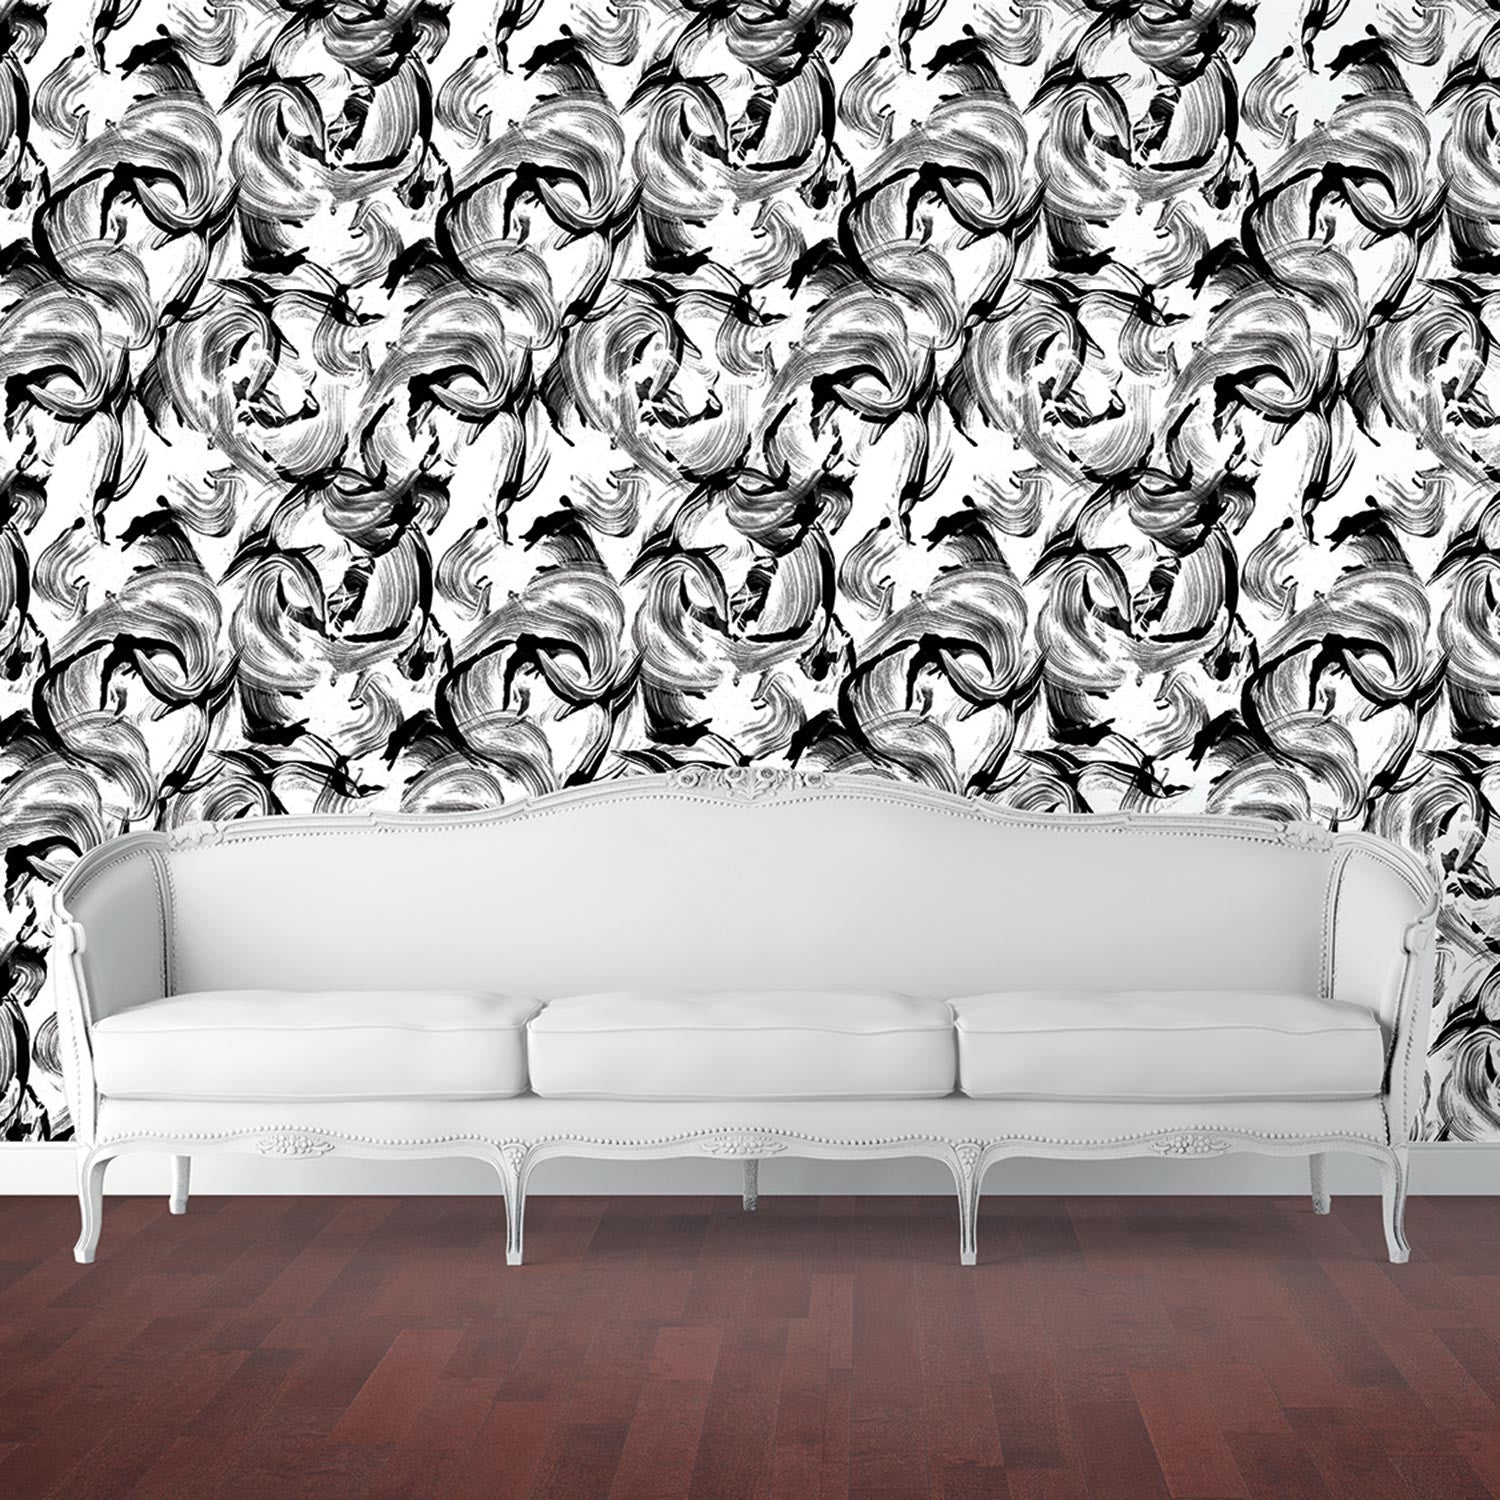 Awesome Temporary Wallpaper   Lu0027amour   White And Black Part 32